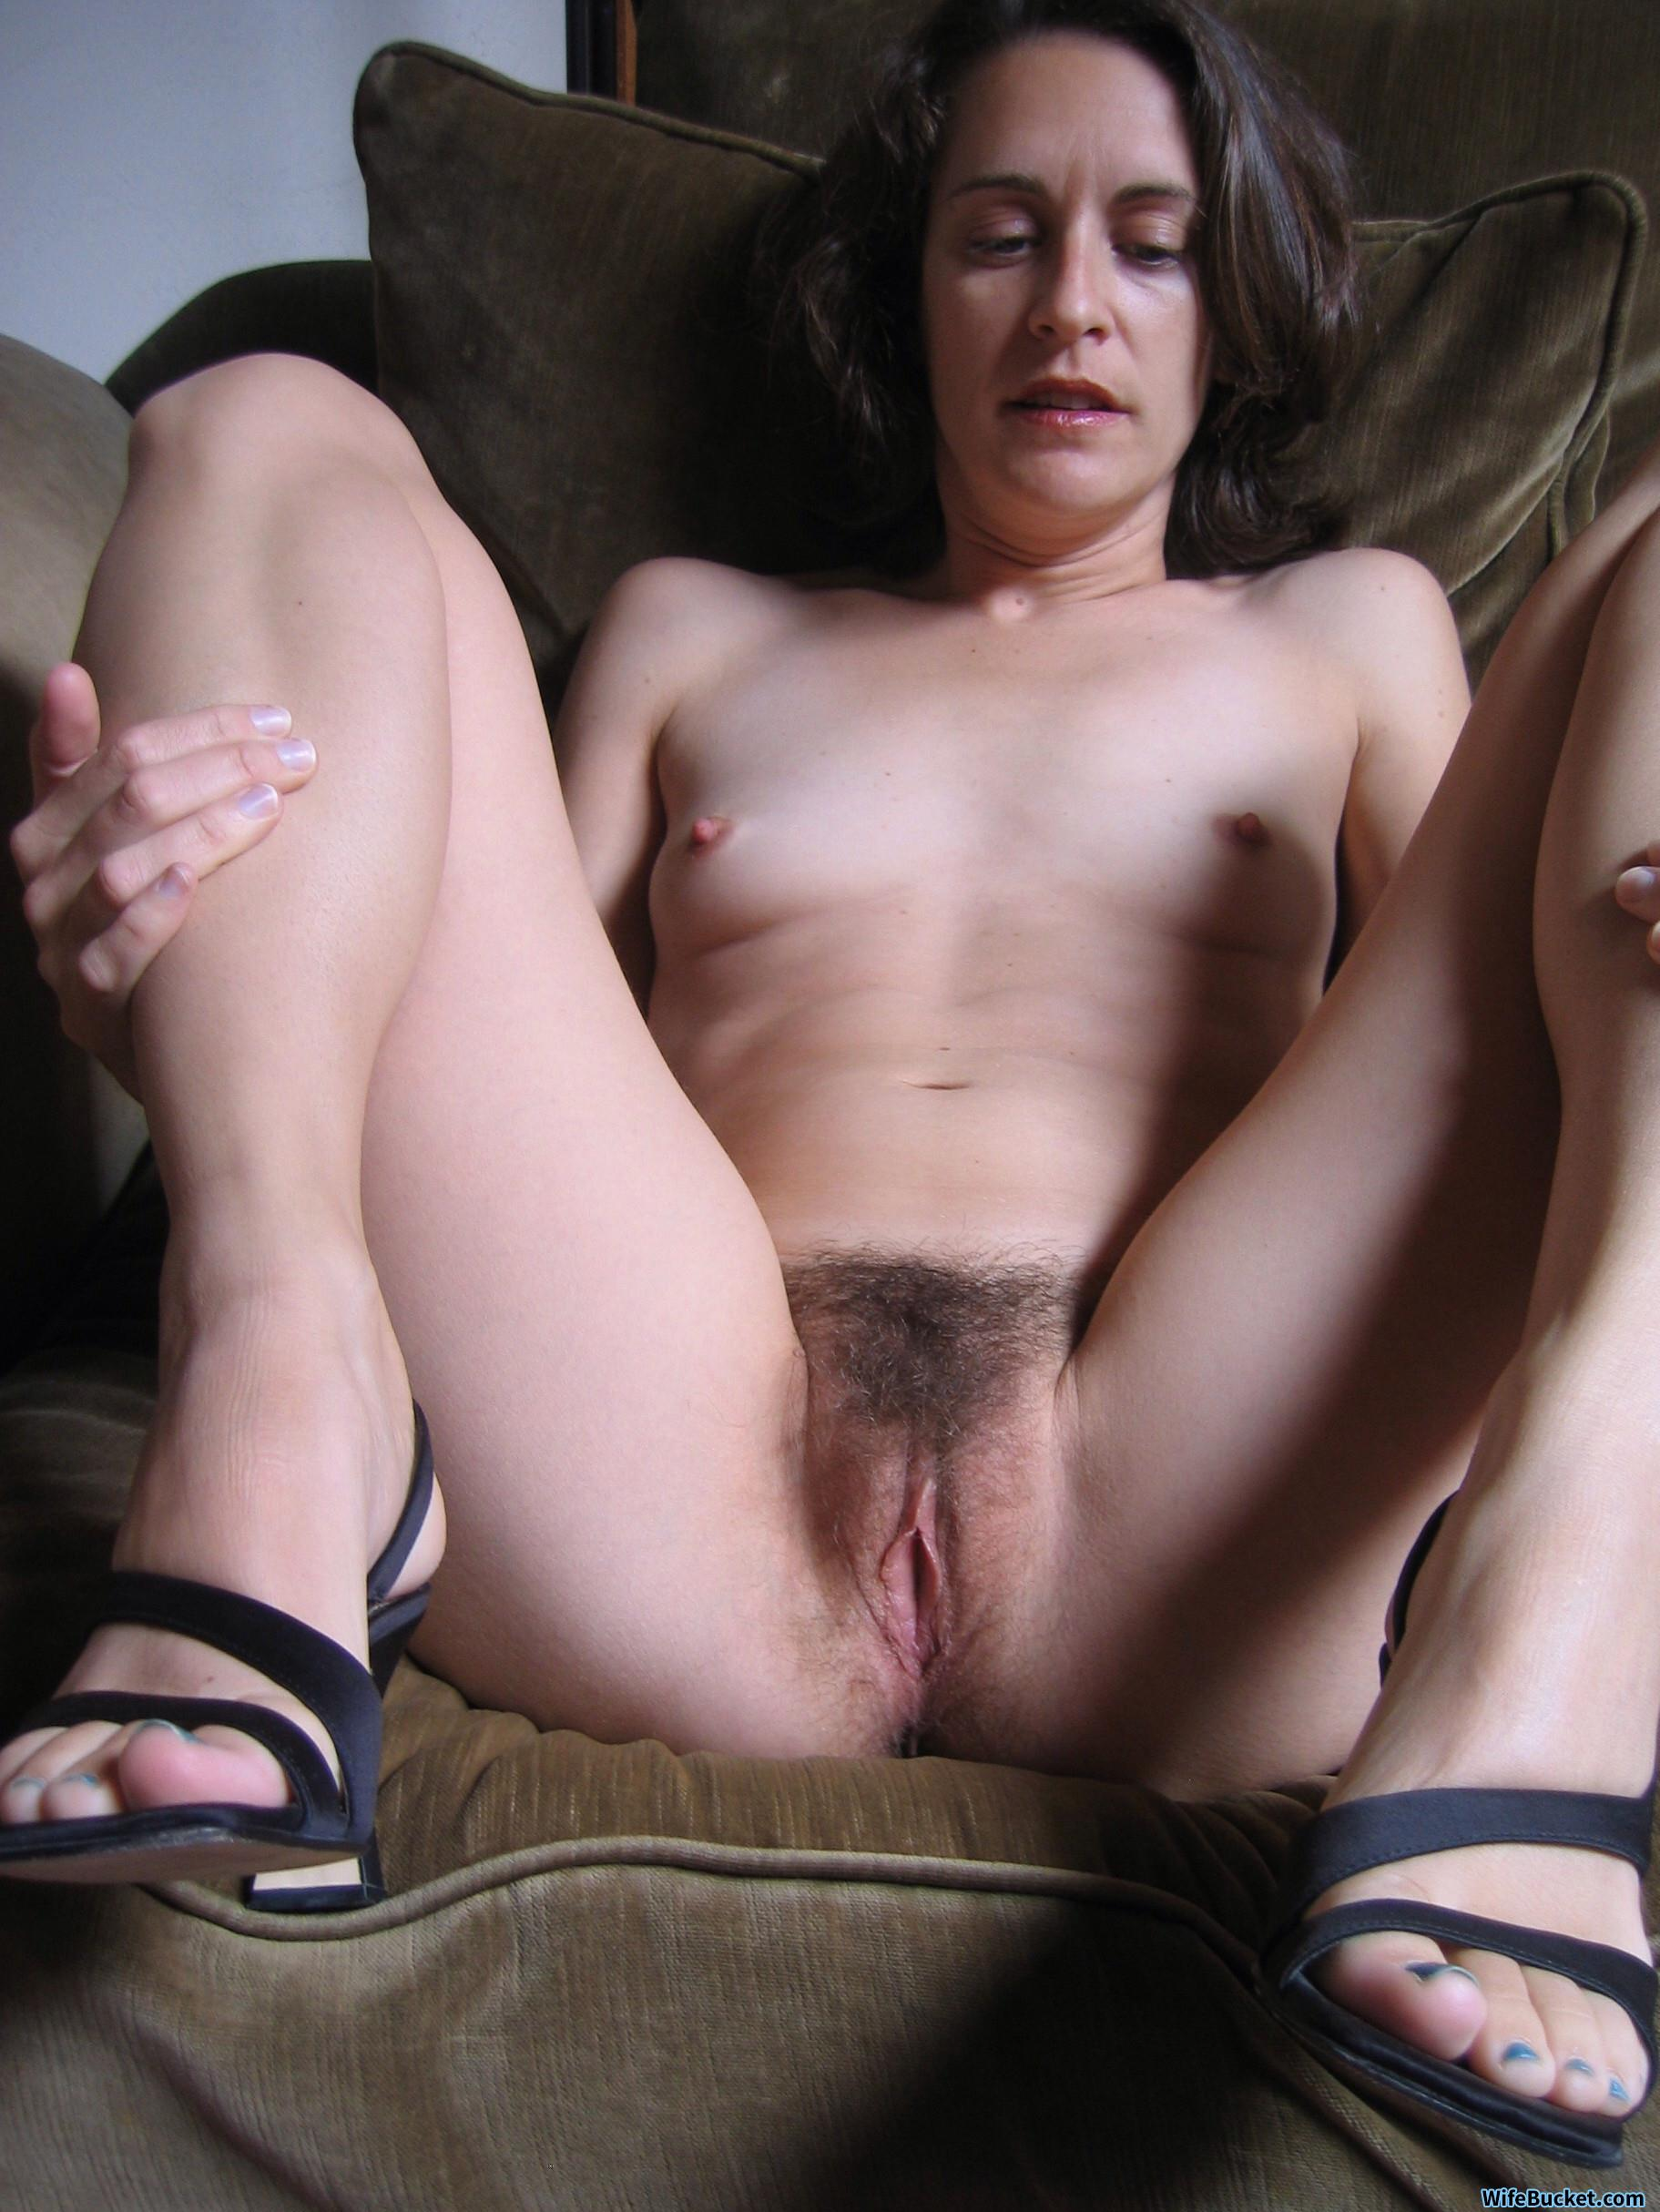 girl yoni photo porn